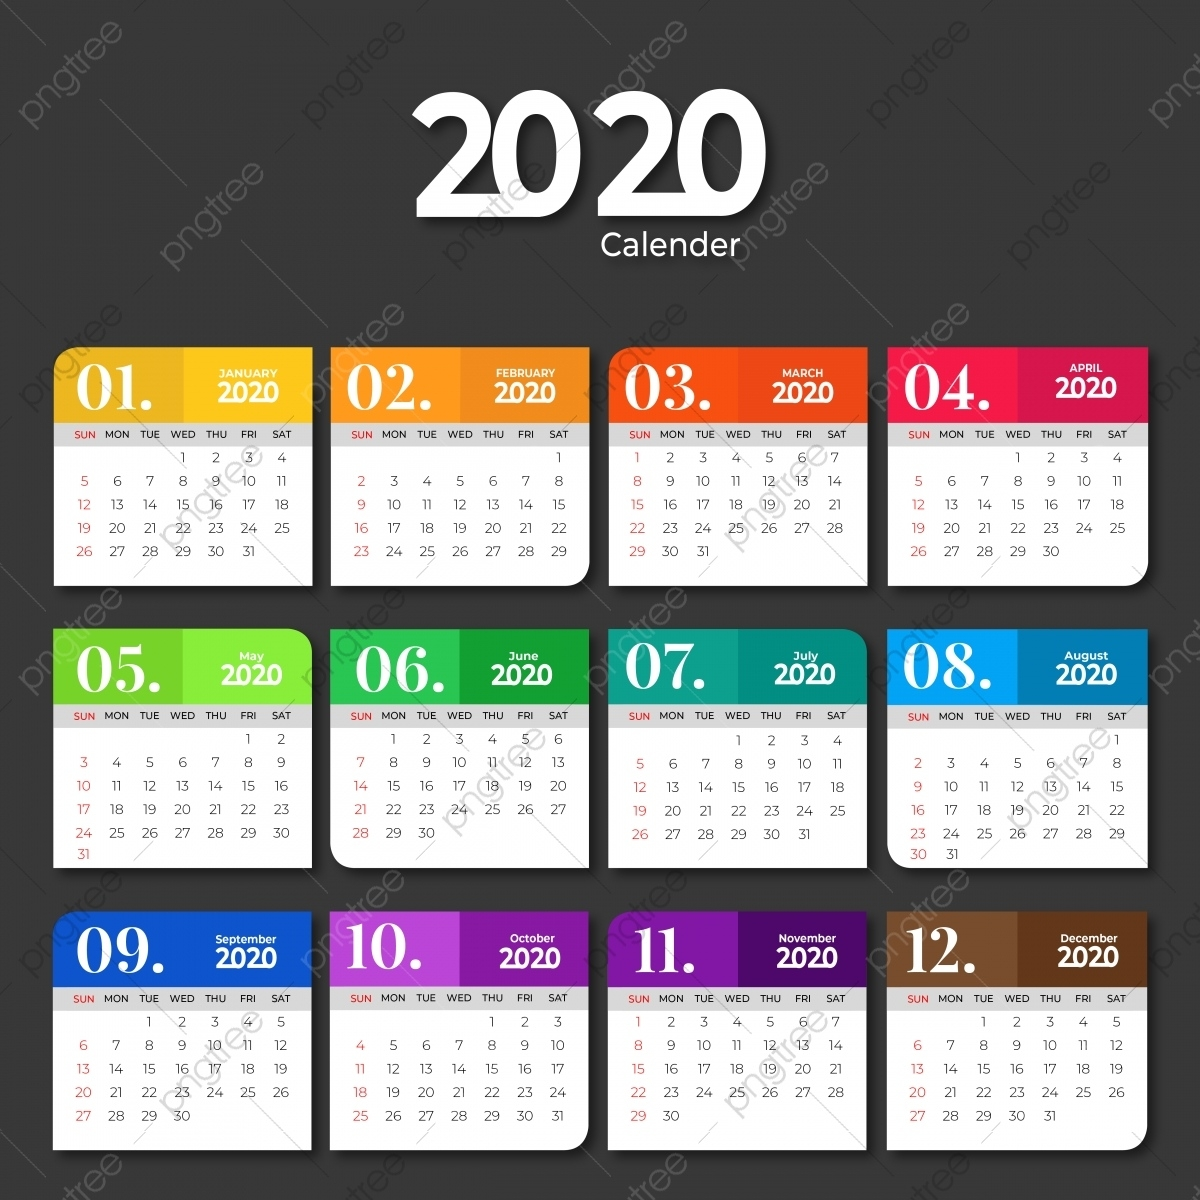 2020 Calendar Template Design With Solid Colors, 2020 Impressive 2020 Calendar Free Vector